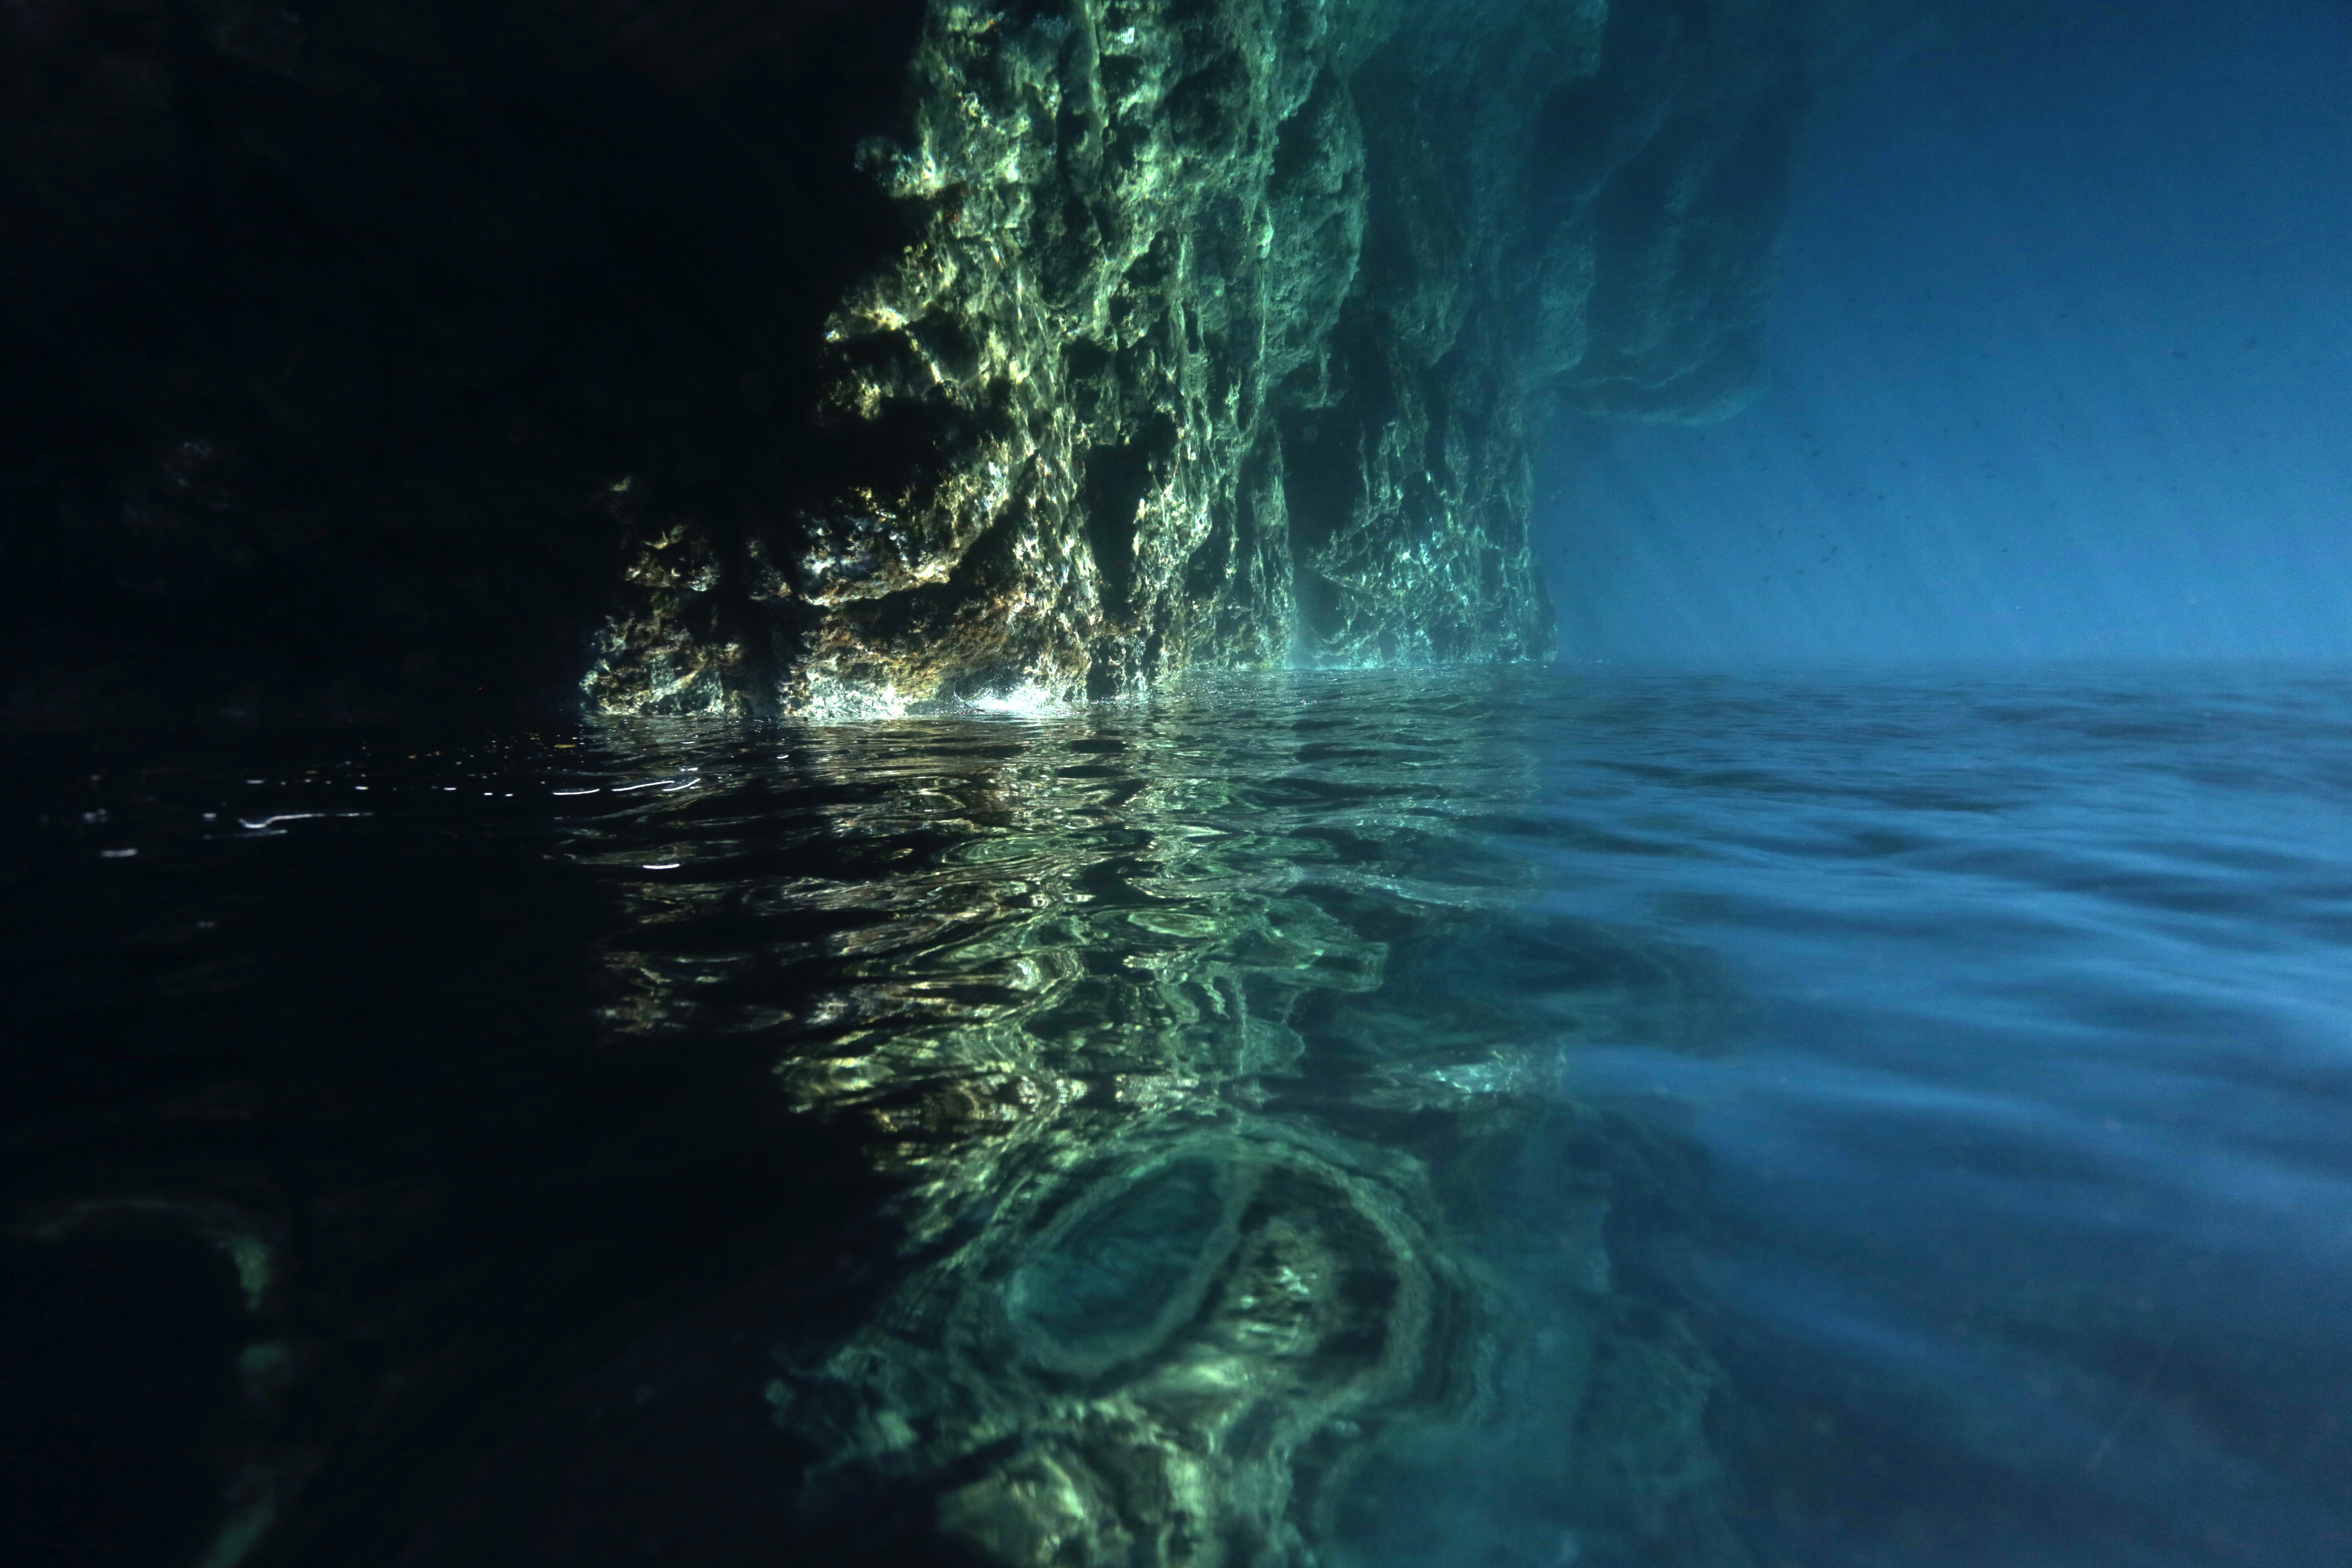 Stephane-Cruciani-photographs-underwater-interview-by-Creative-Mapping-Dark-and-bluei